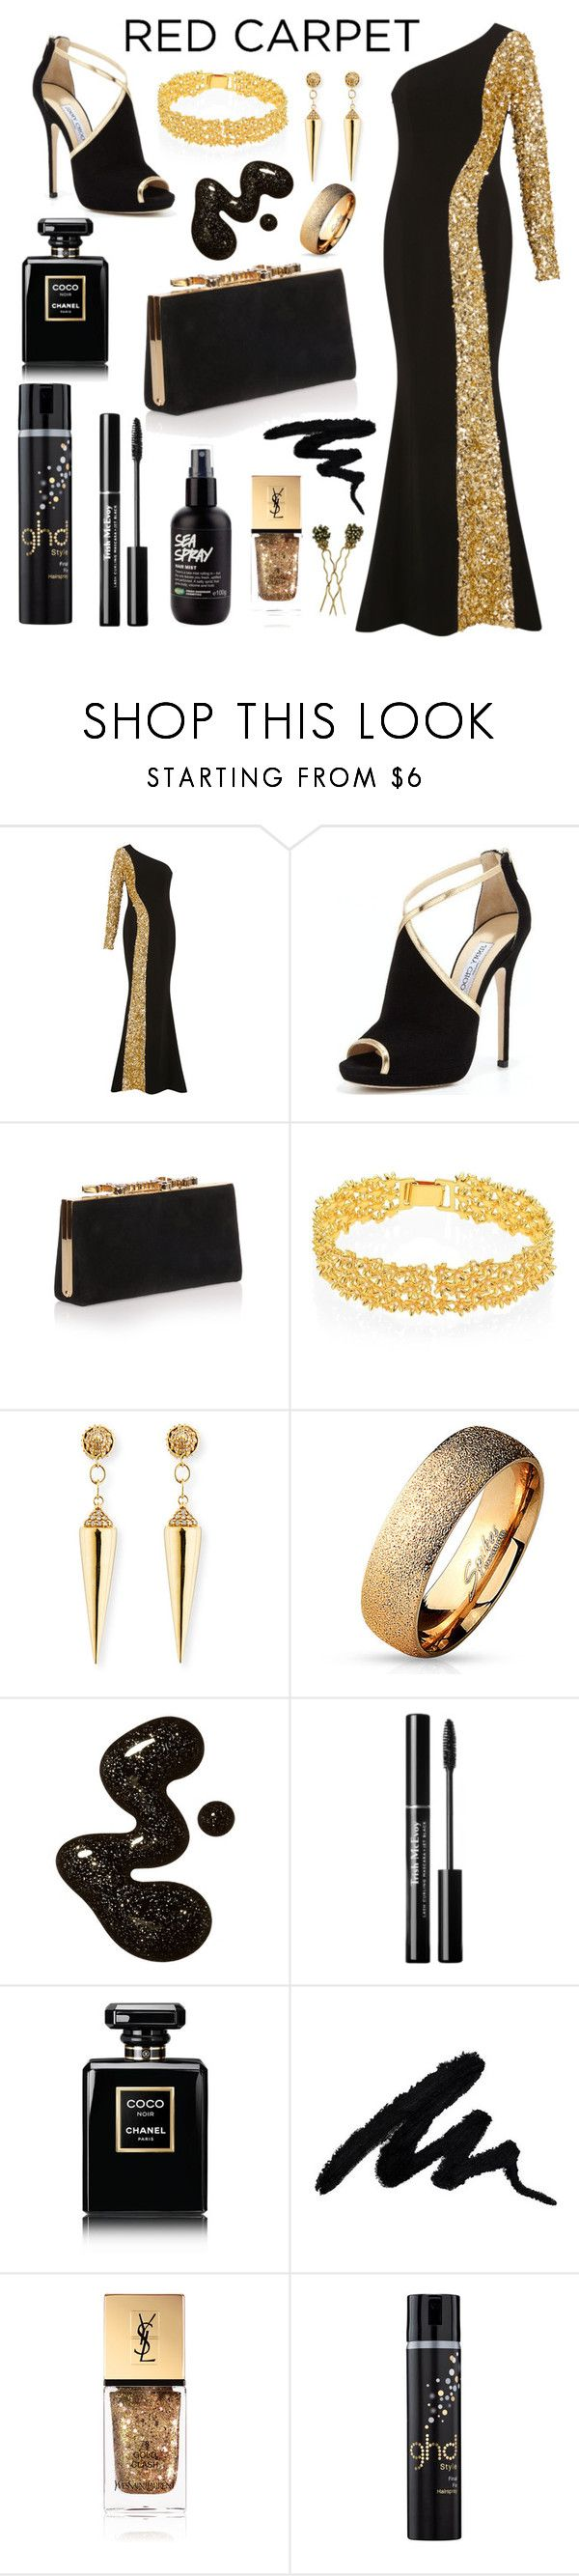 """""""Red Carpet Look"""" by tomlin945 ❤ liked on Polyvore featuring Elizabeth Kennedy, Jimmy Choo, Lele Sadoughi, Sydney Evan, West Coast Jewelry, Chanel, Yves Saint Laurent, GHD and Countess Cis Zoltowska"""